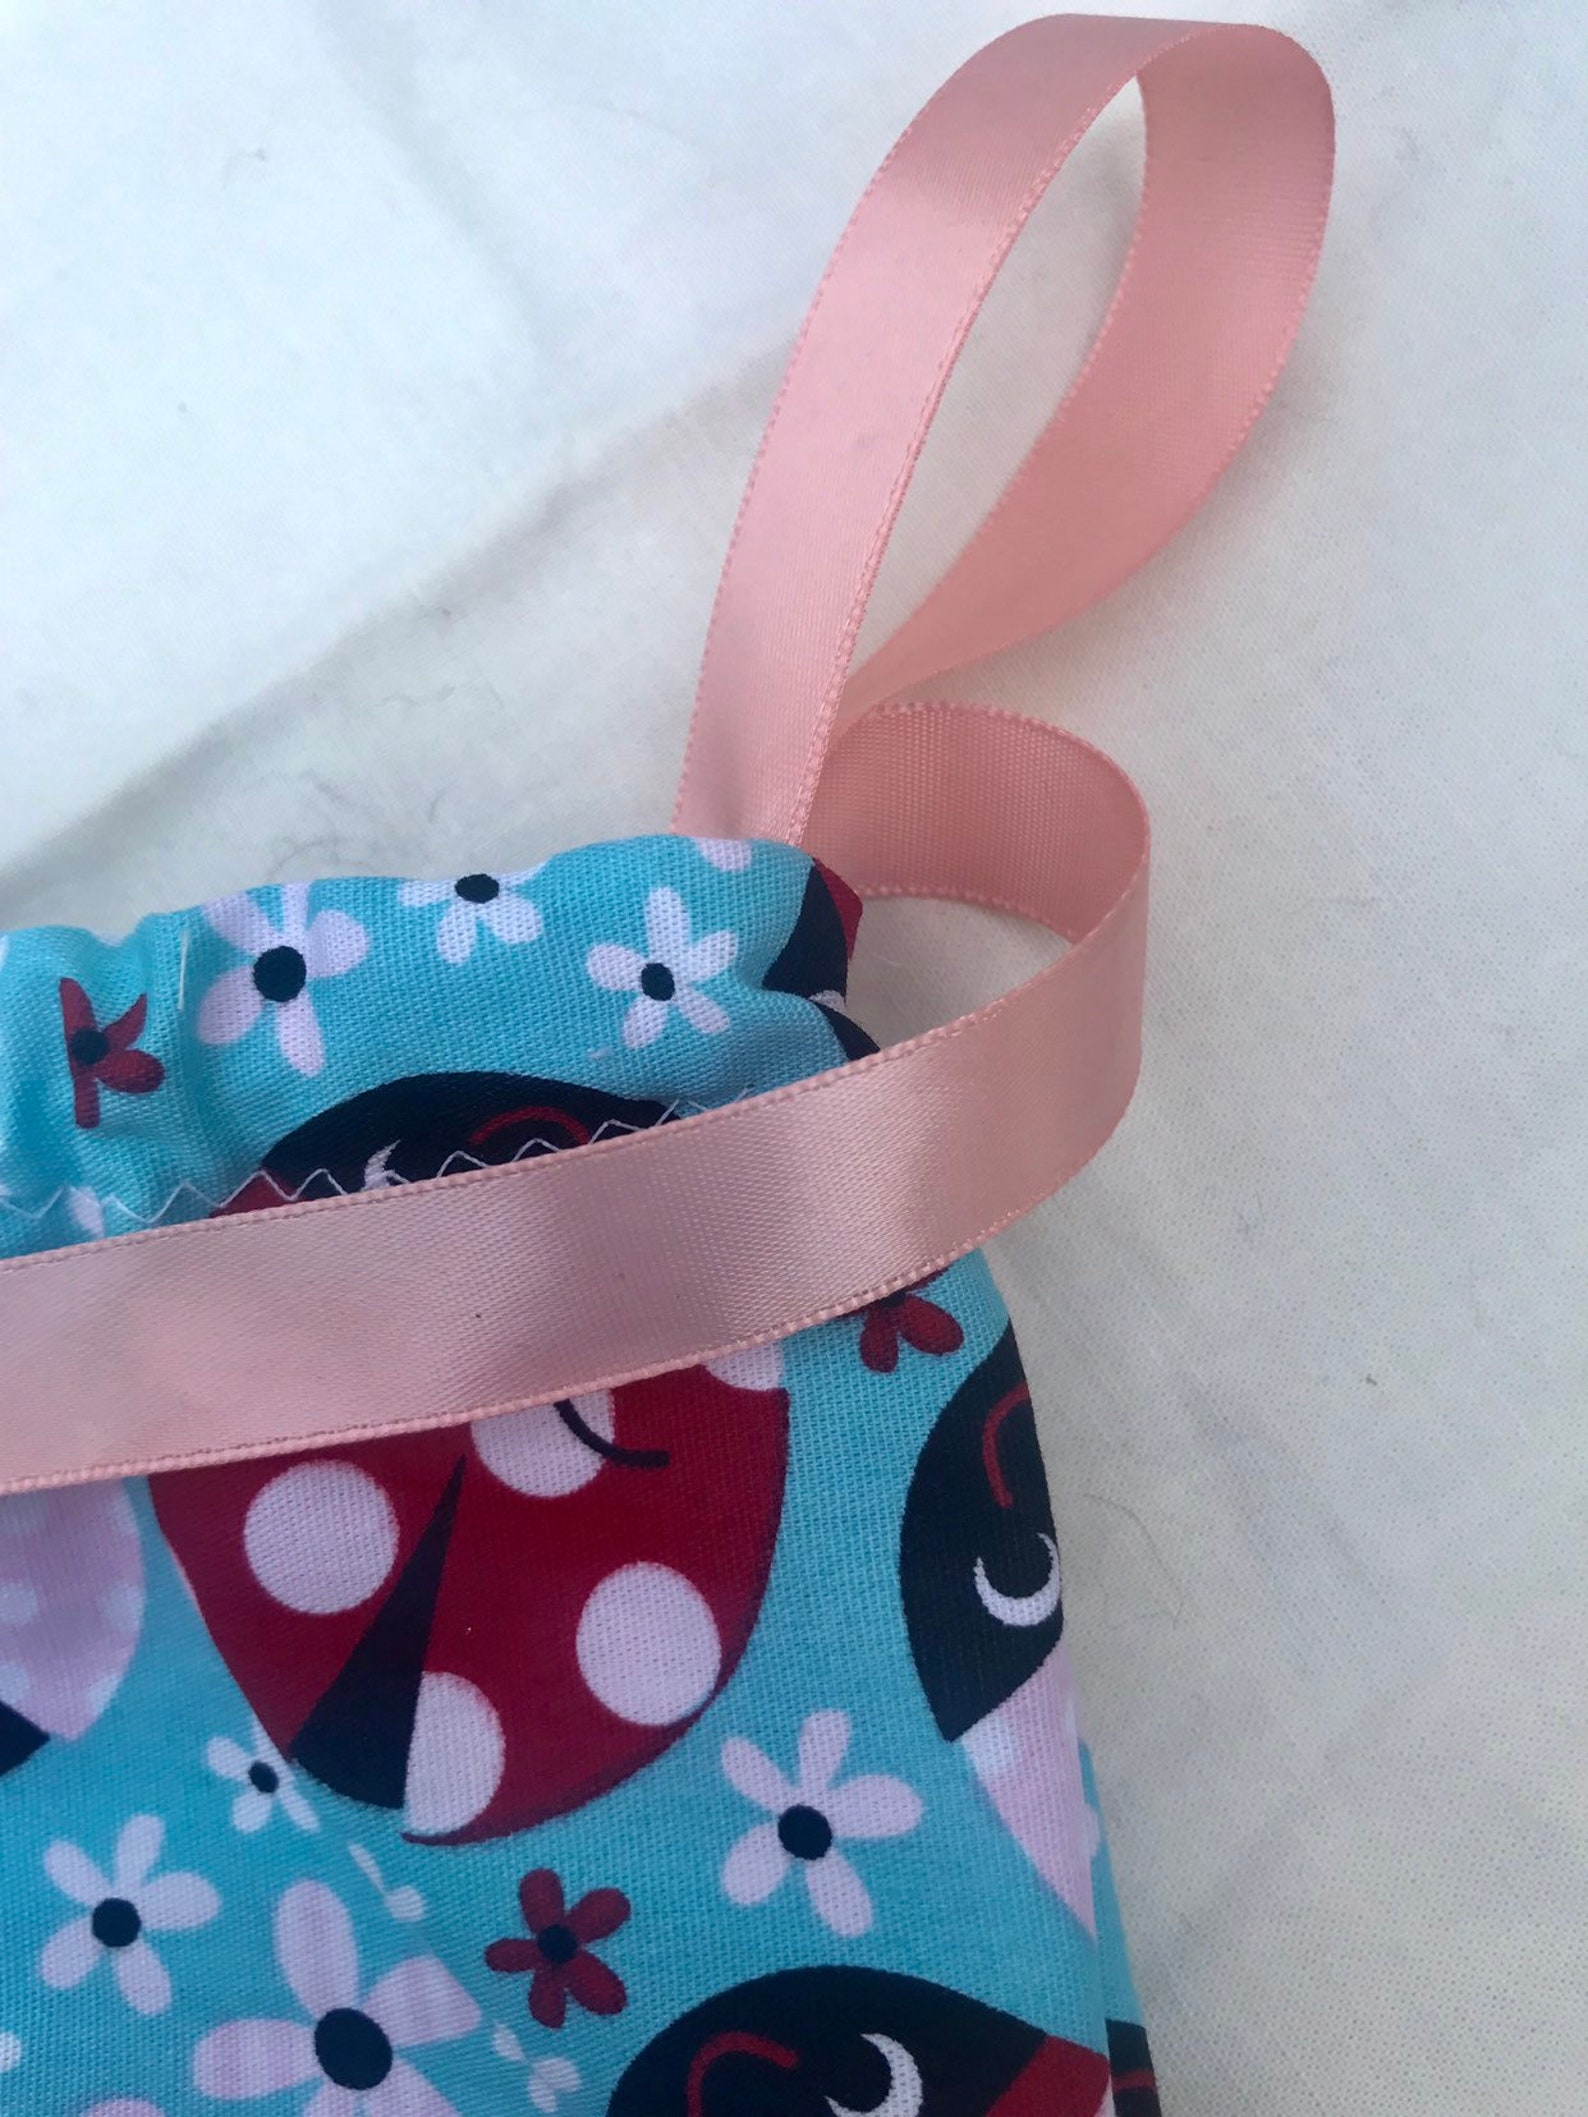 ladybug ballet shoe bag / pointe shoe bag / travel shoe bag / drawstring bag